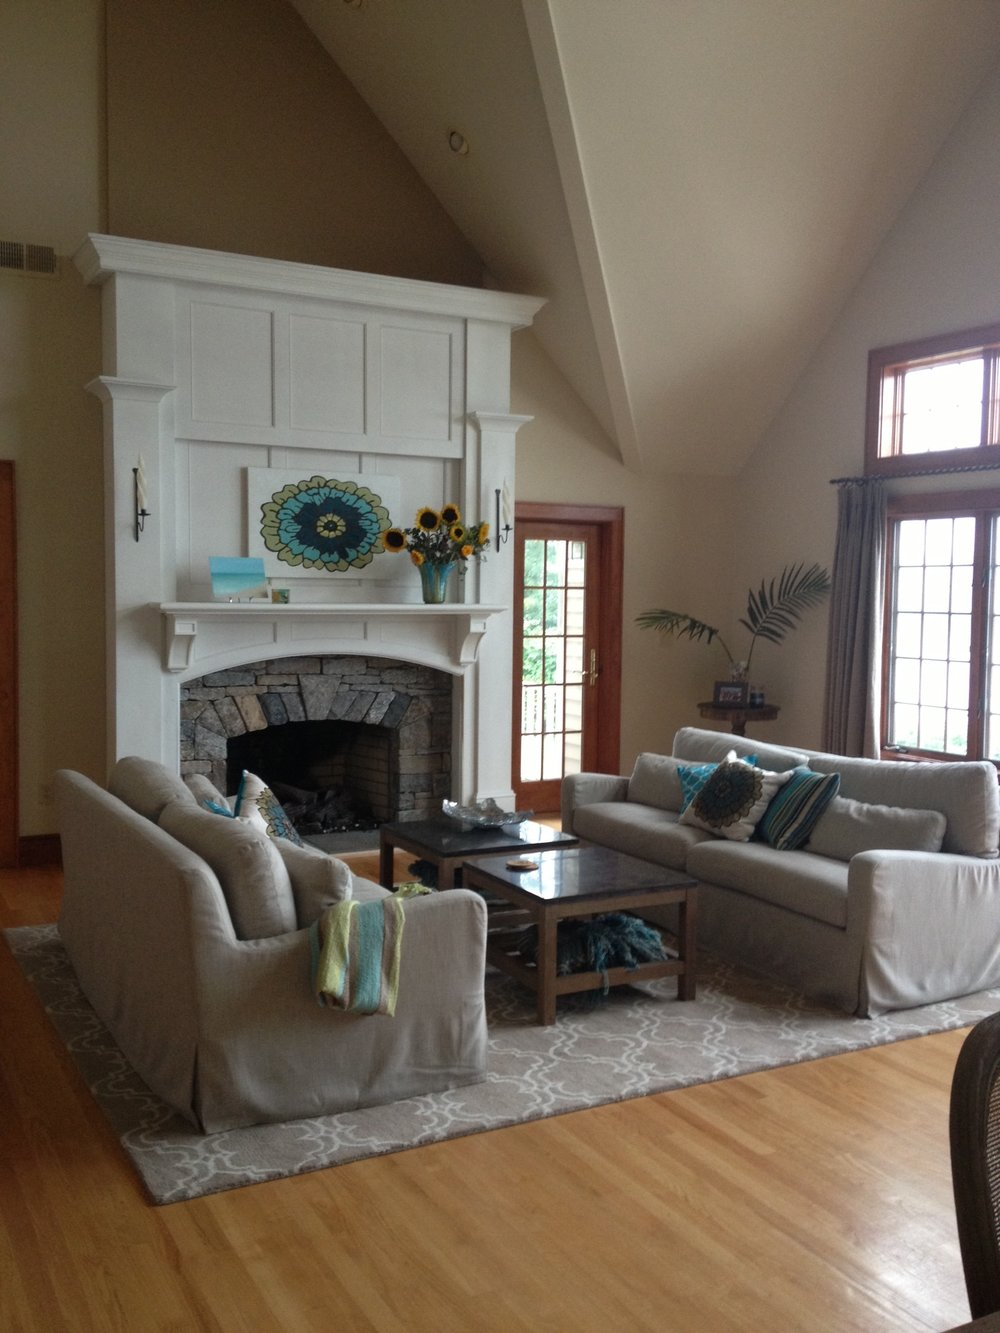 Fireplace Surround with Motorized Panel Lift 1.jpg